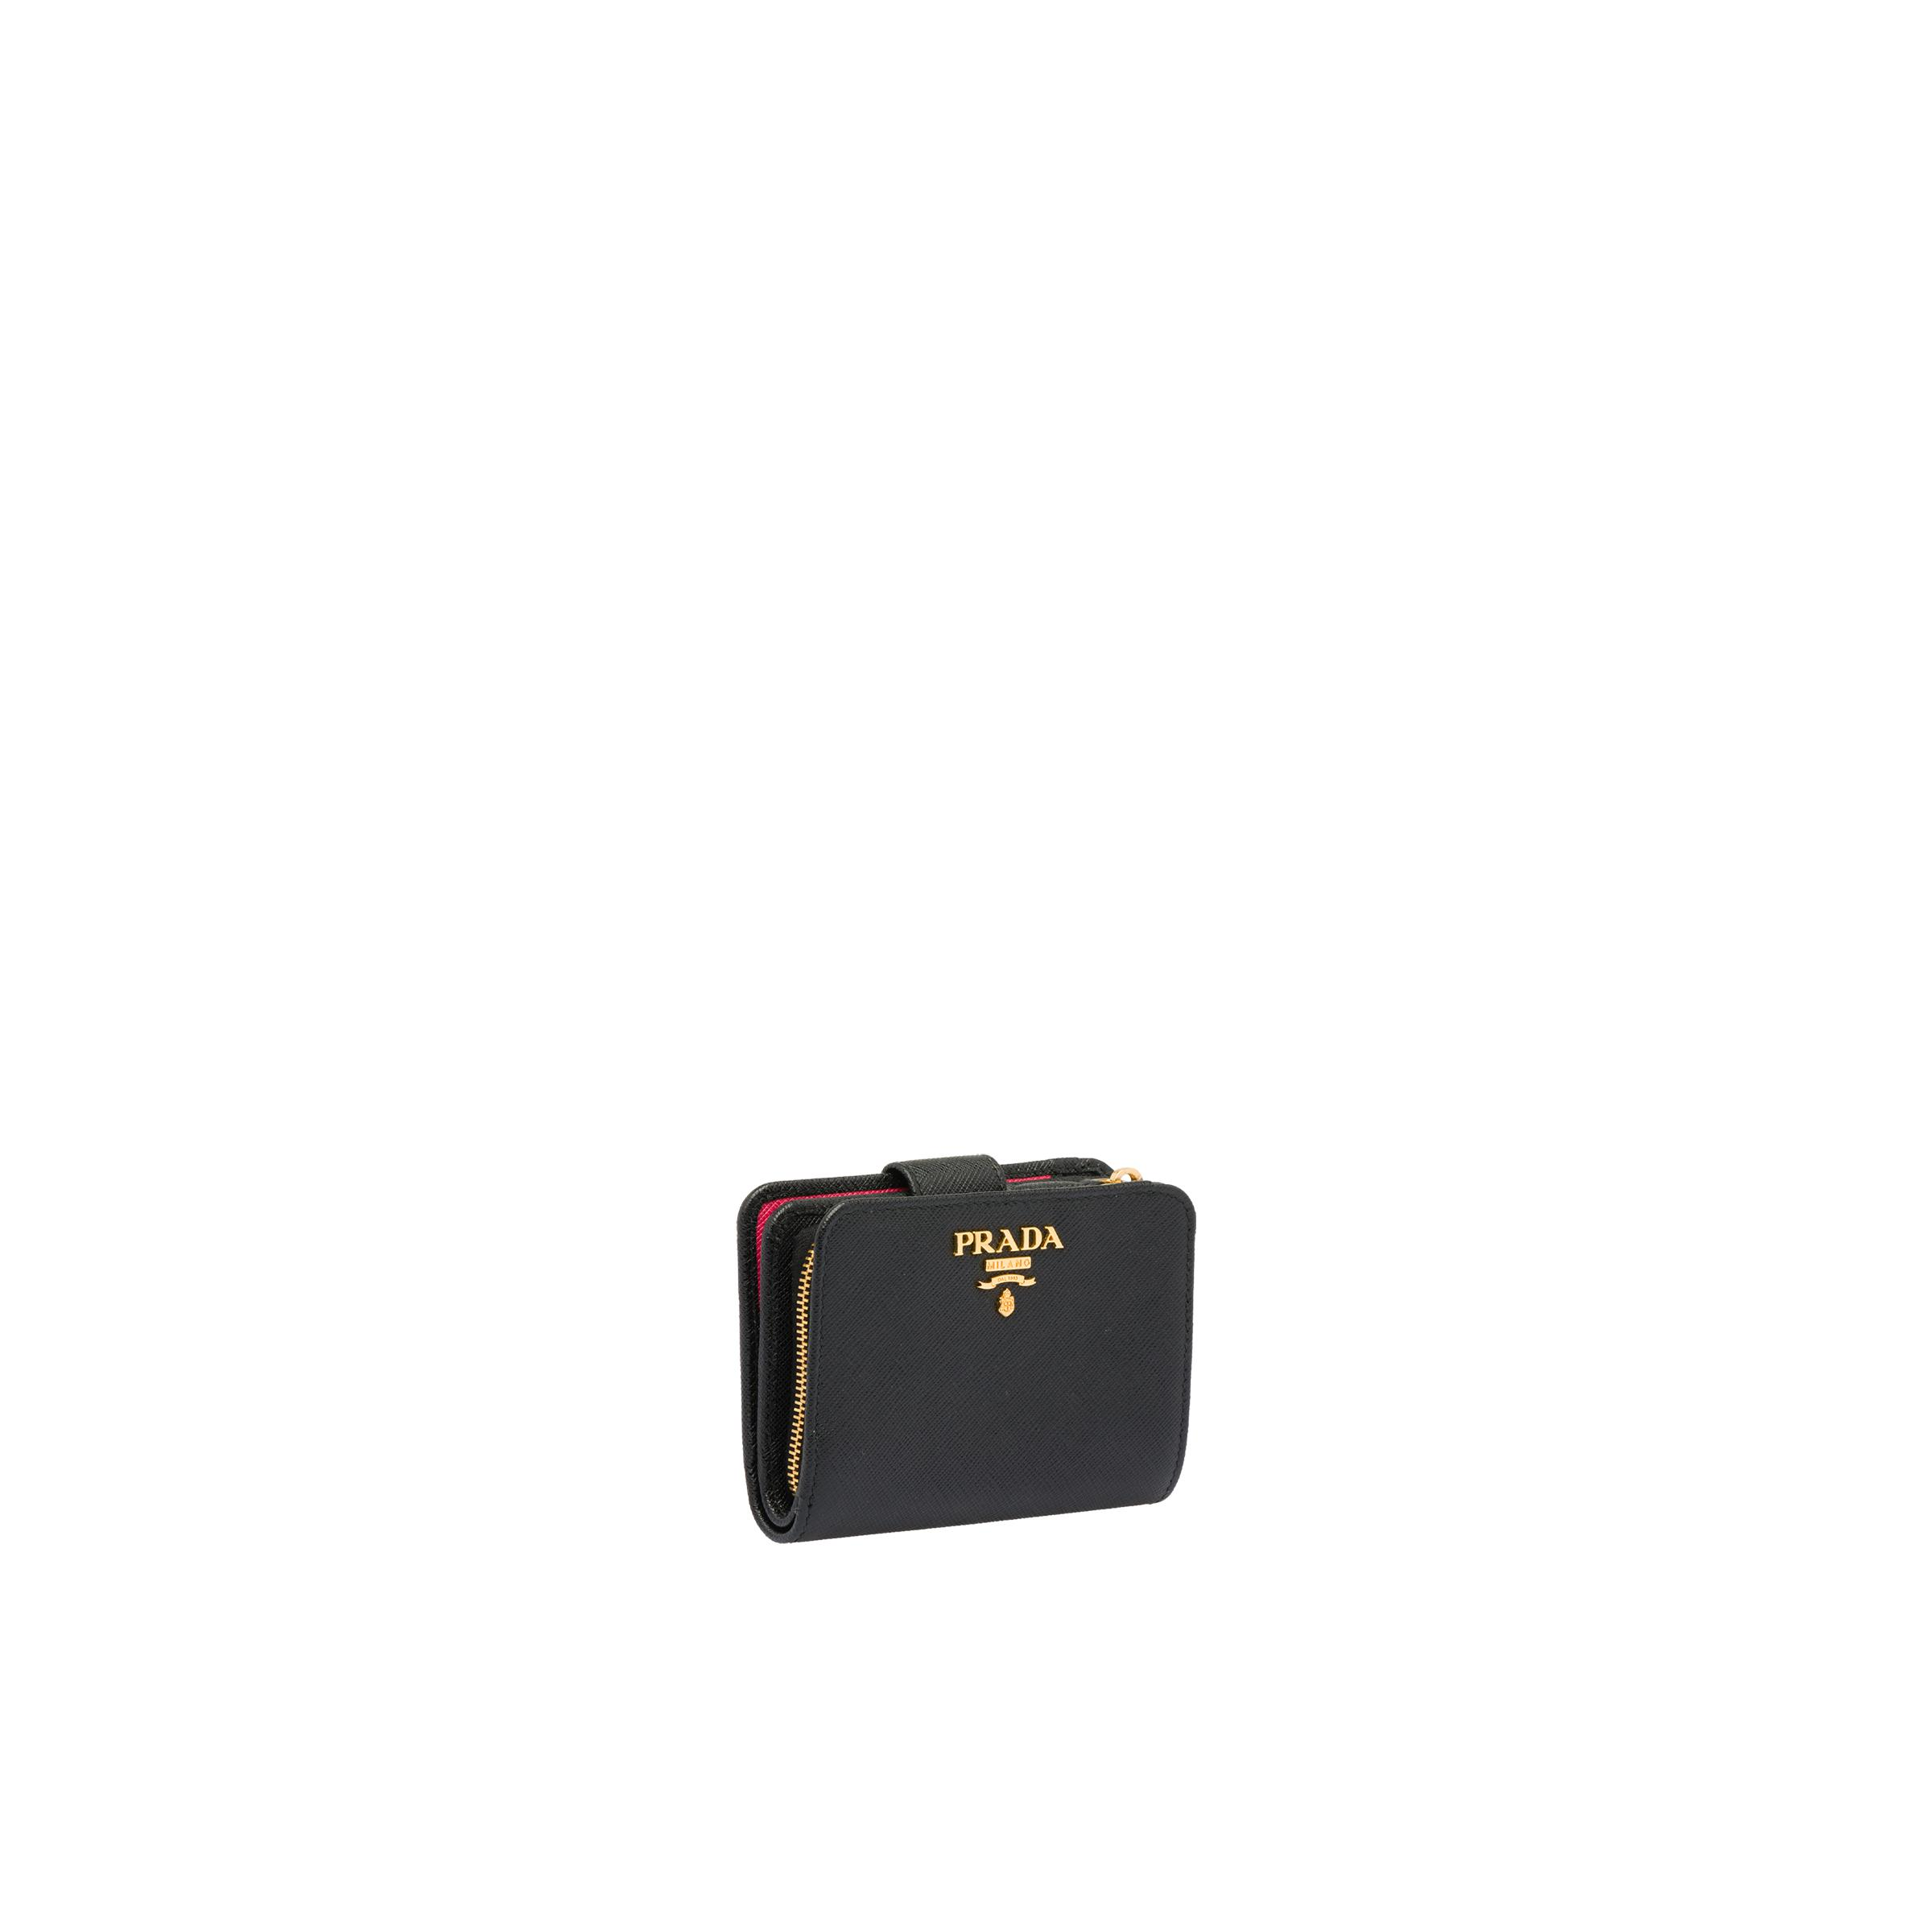 Small Saffiano Leather Wallet Women Black/hibiscus 3